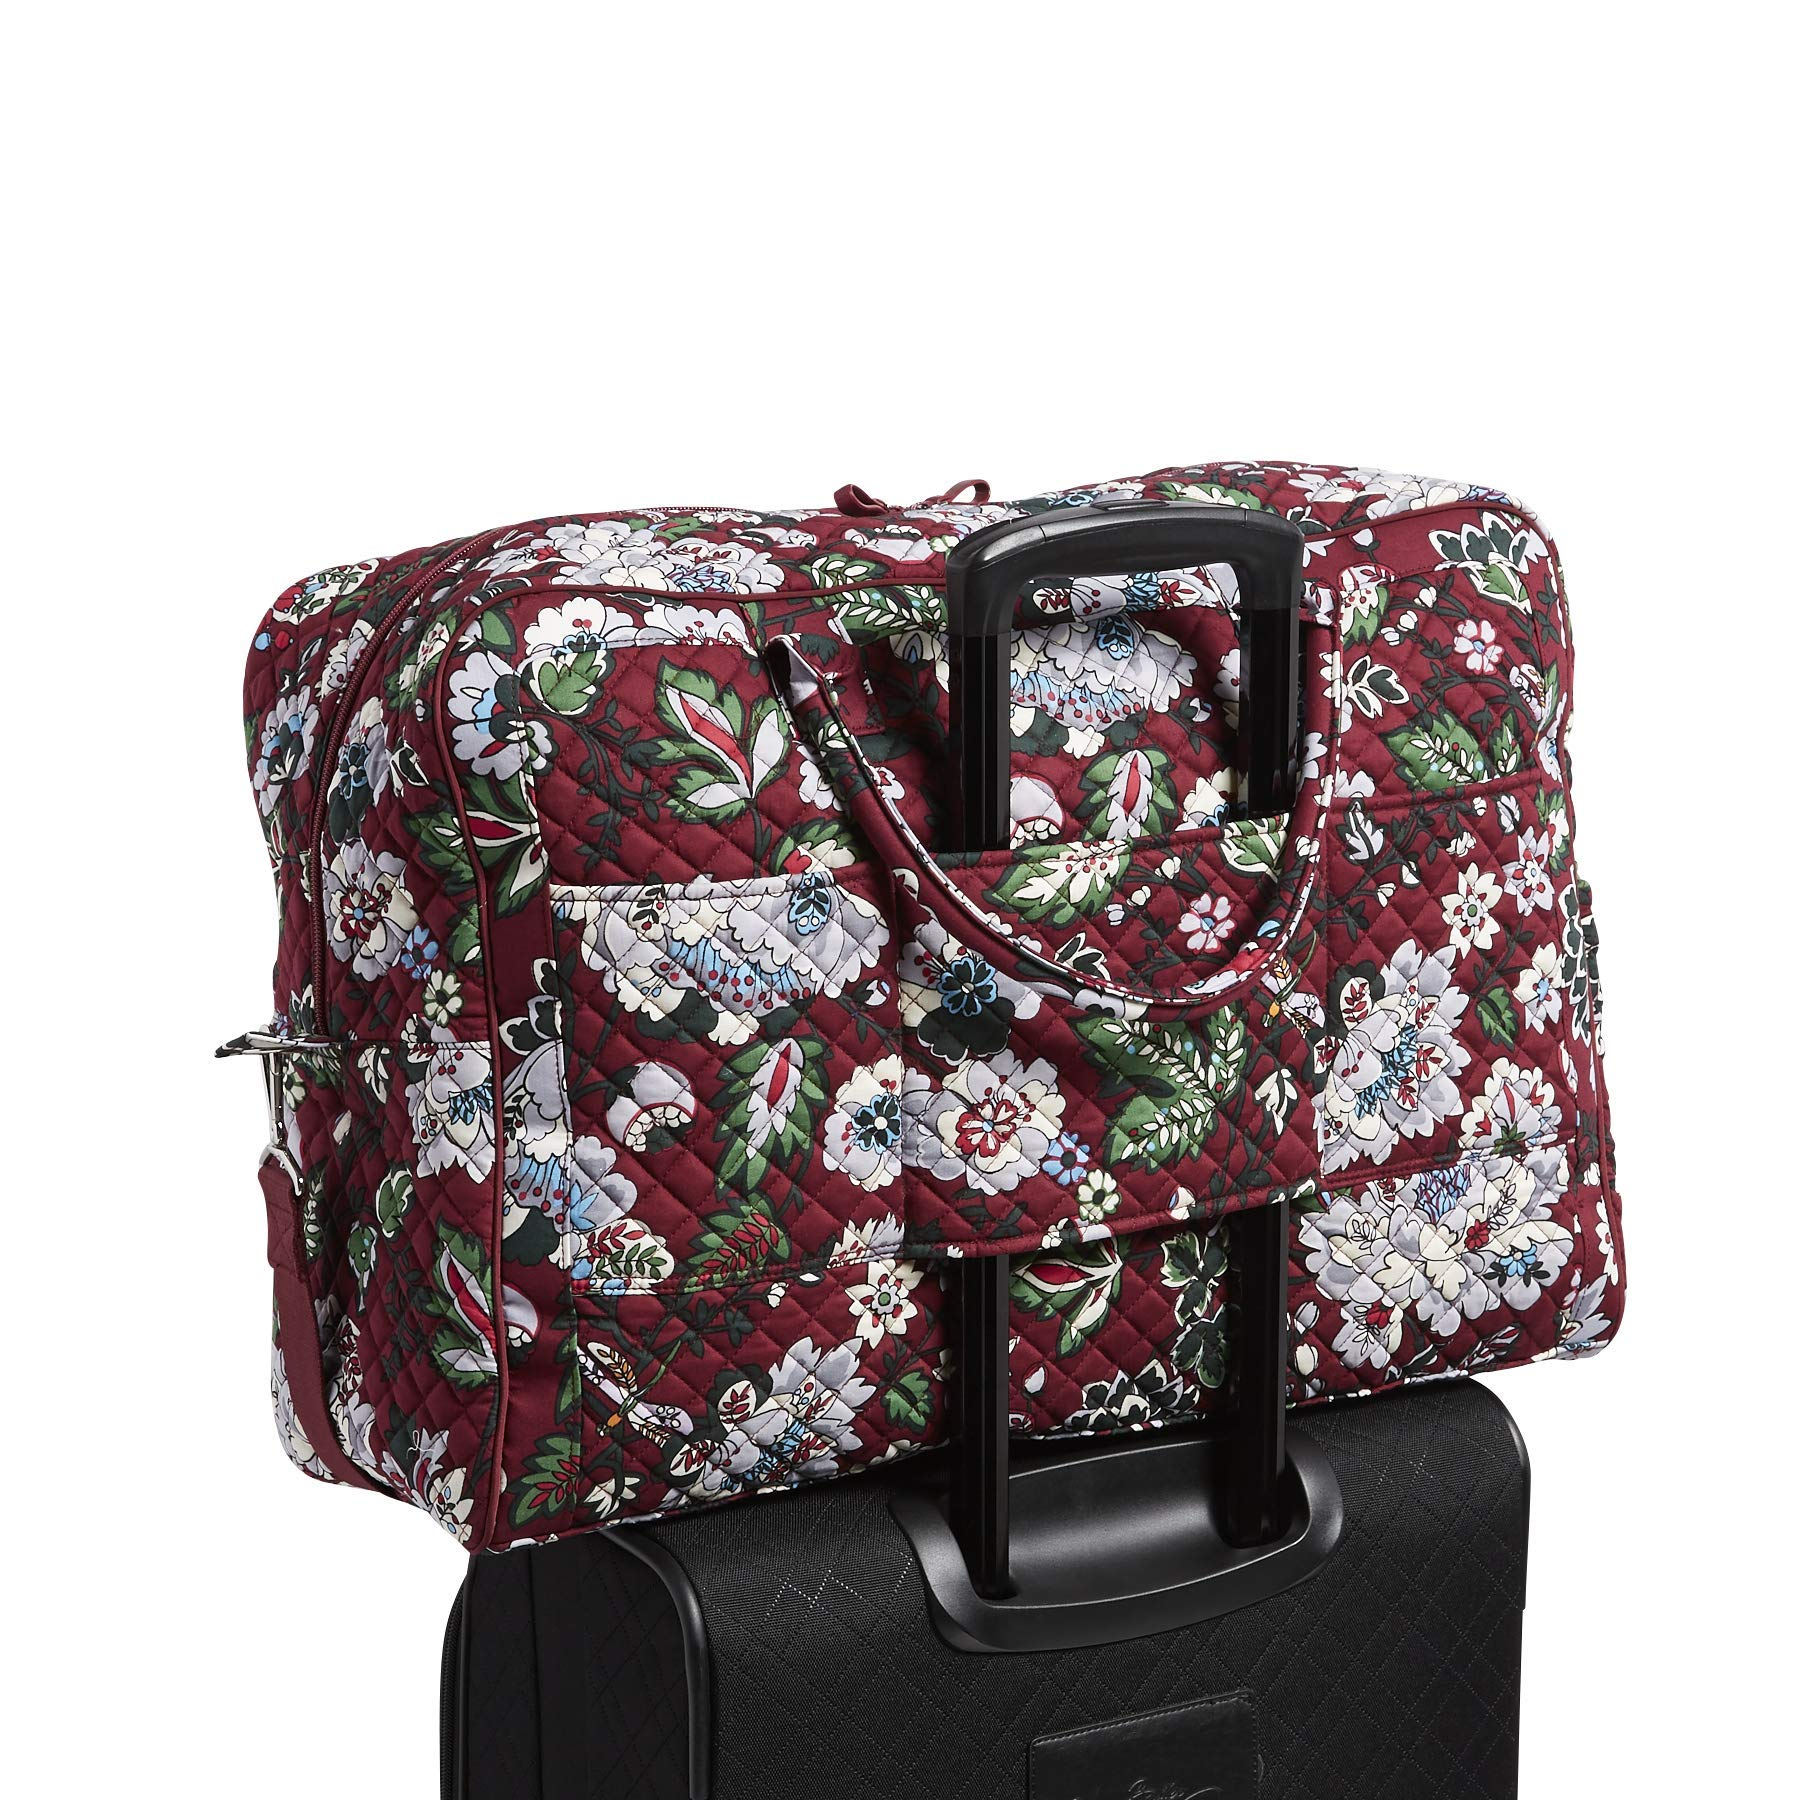 Vera Bradley Iconic Grand Weekender Travel Bag, Signature Cotton, bordeaux blooms by Vera Bradley (Image #7)